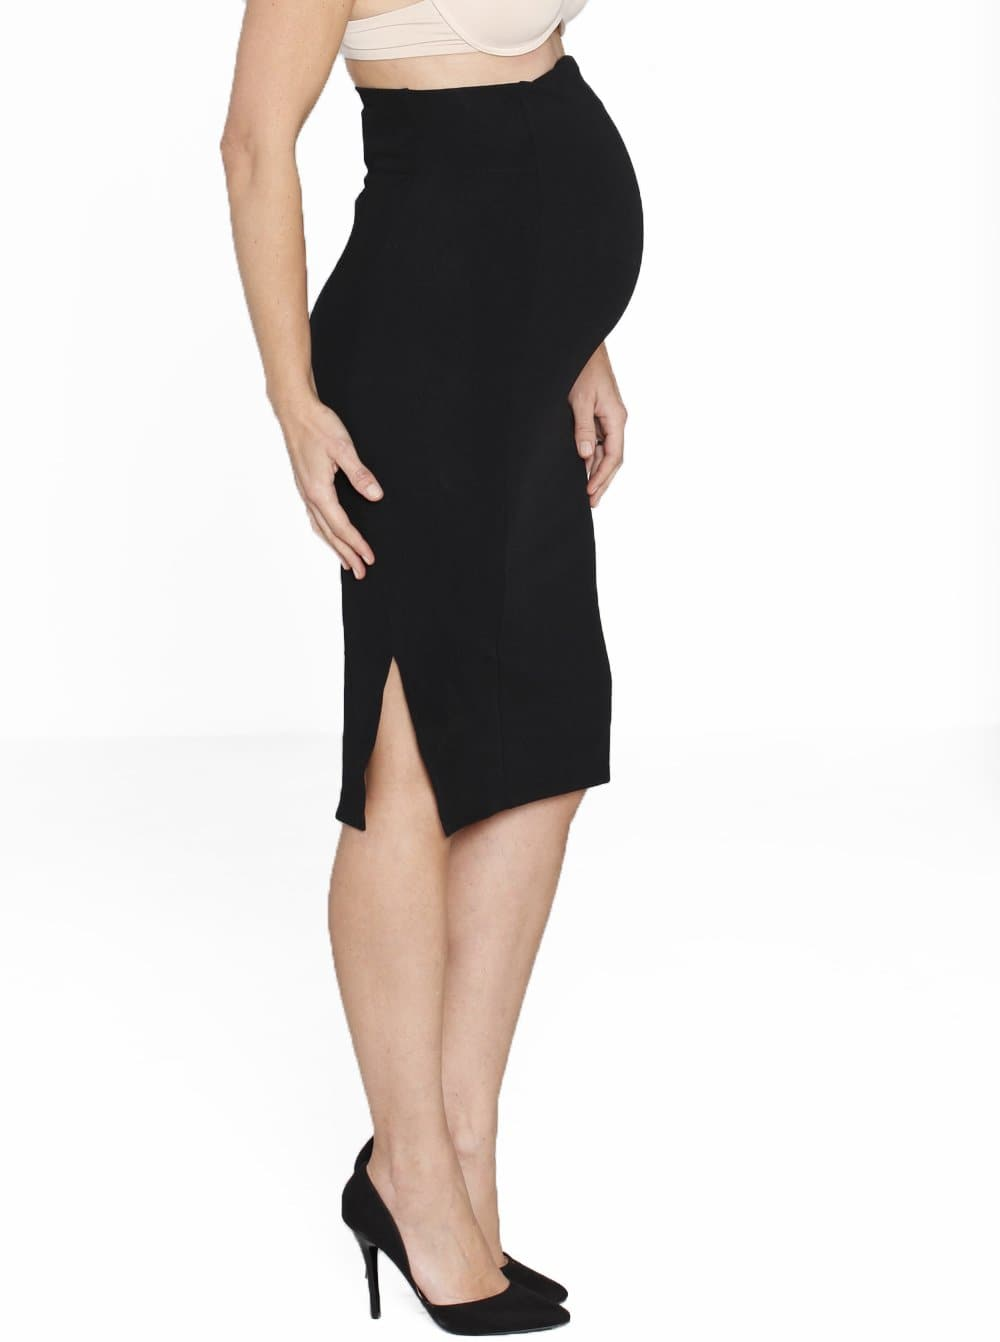 Textured Fitted High Waist Maternity Skirt in Black - Angel Maternity - Maternity clothes - shop online